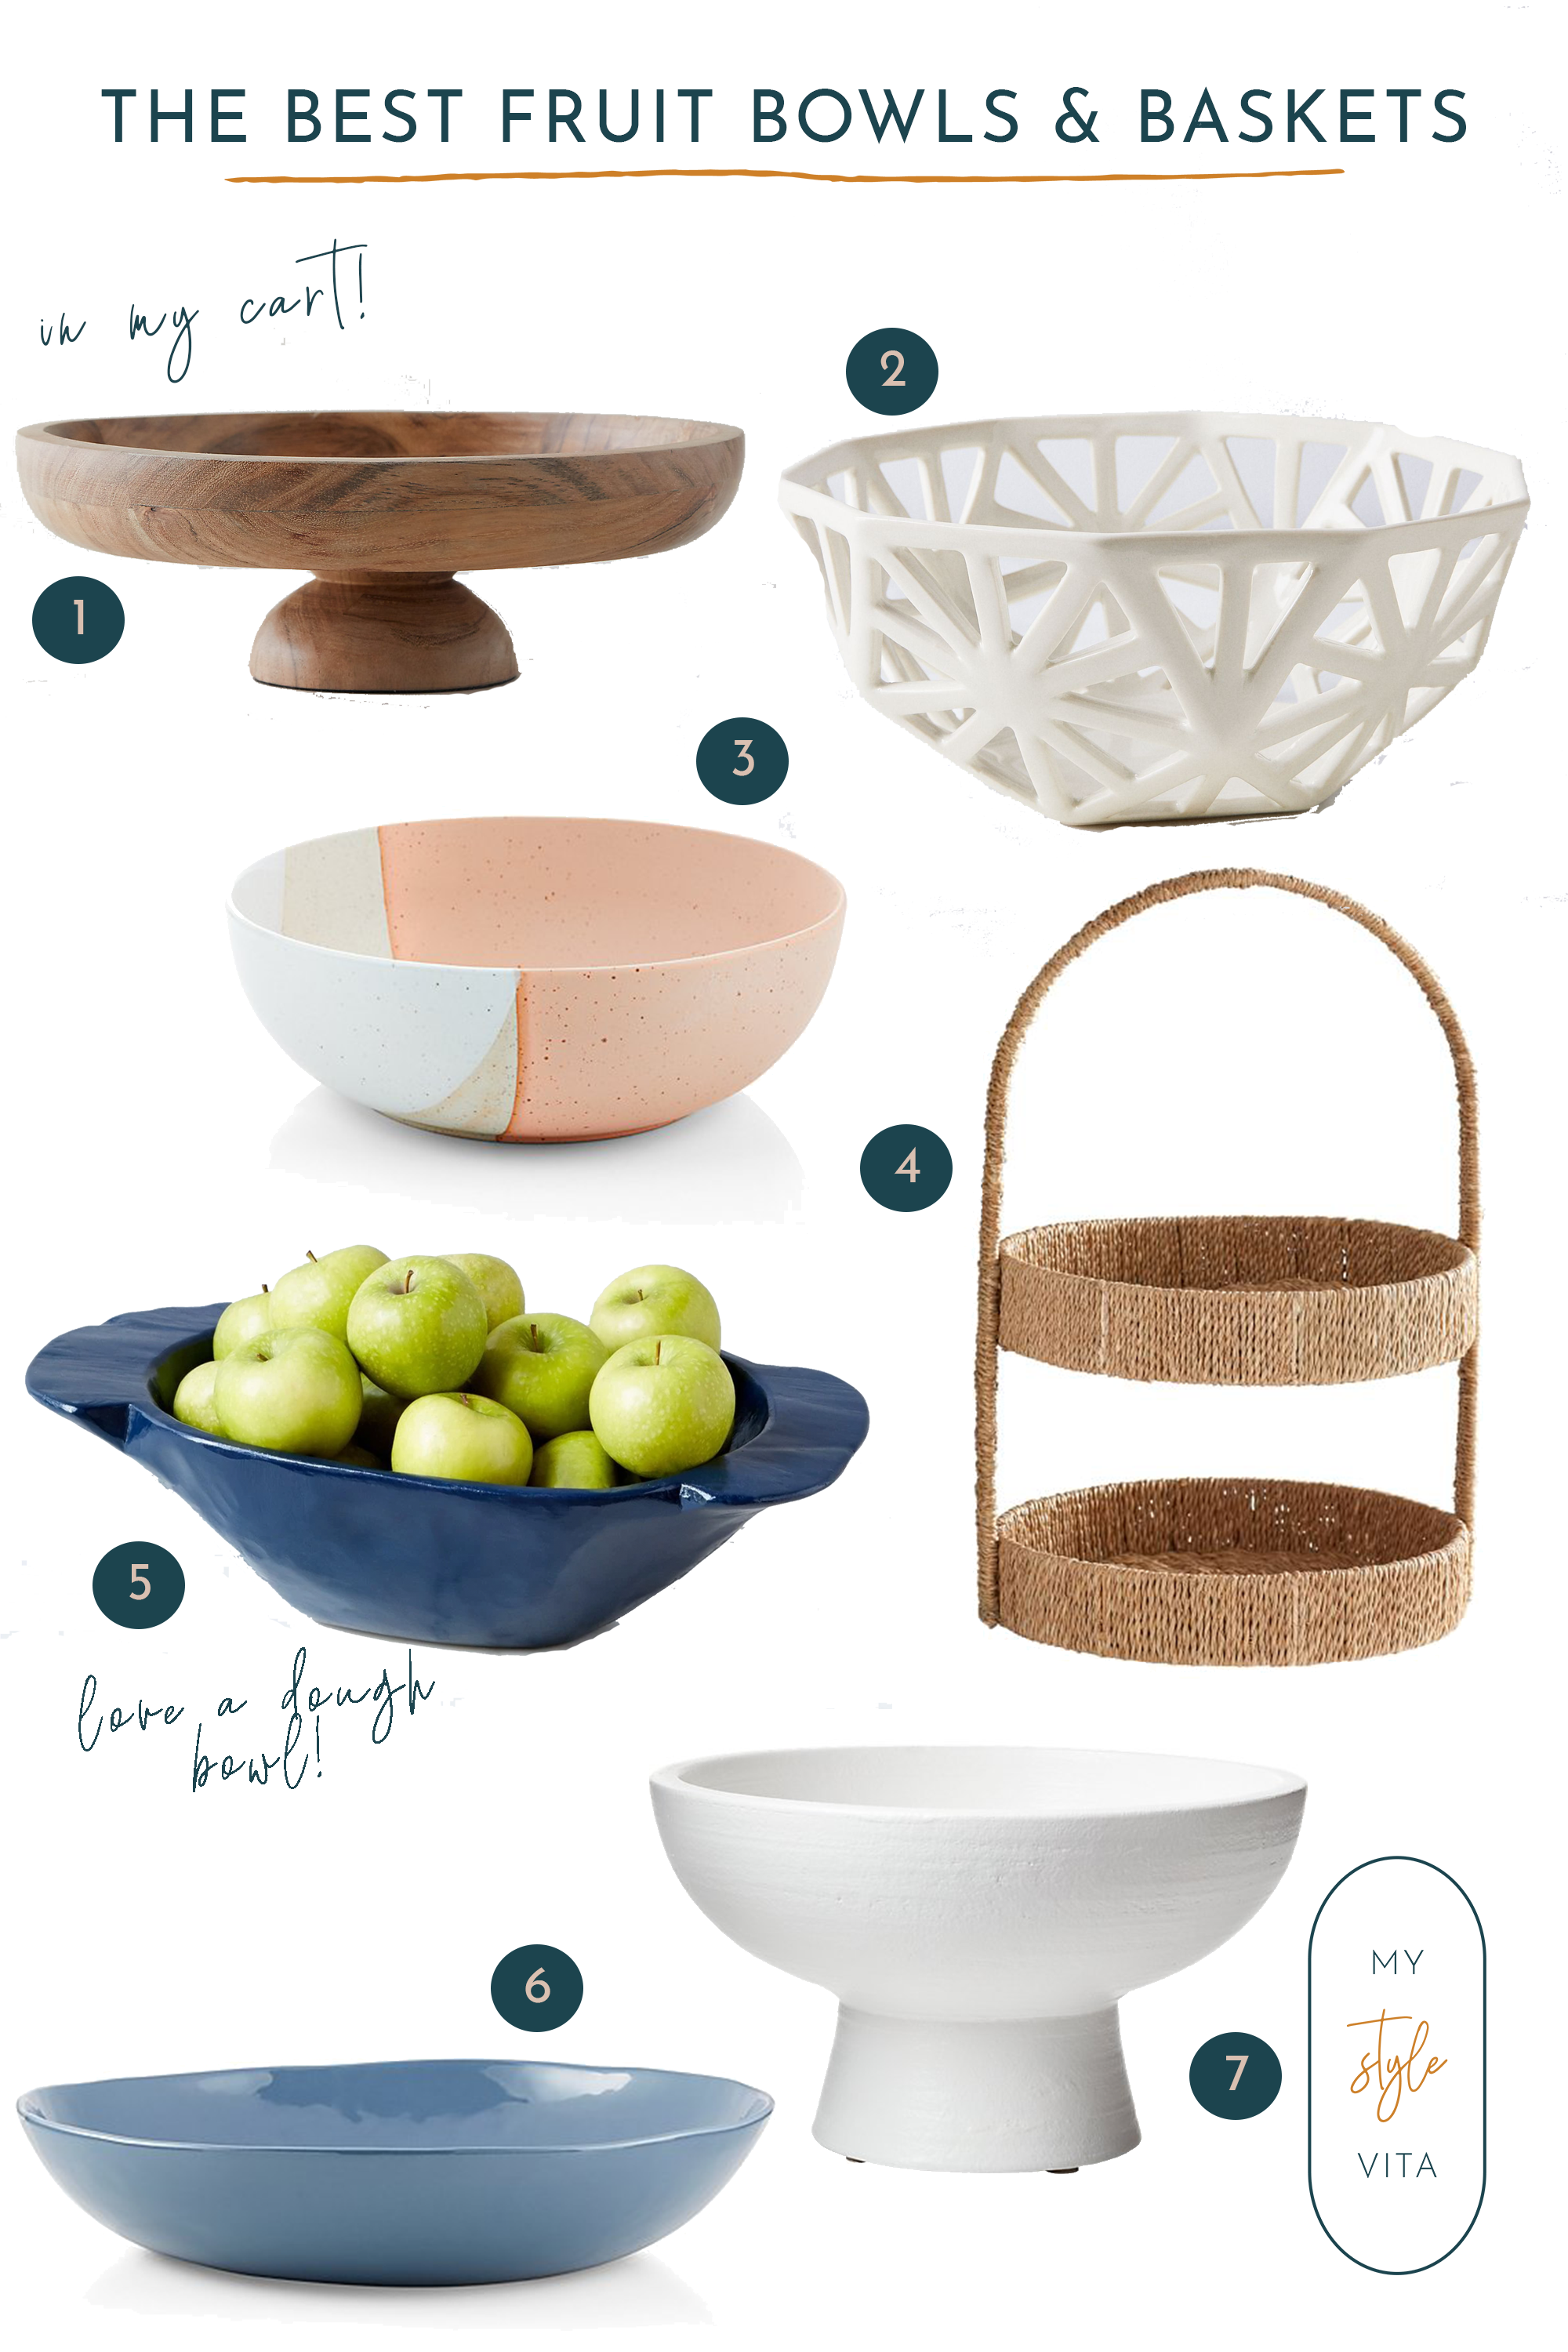 the best fruit bowls baskets for your kitchen my style vita in 2020 fruit bowl decor wooden fruit bowl ceramic fruit bowl fruit bowls baskets for your kitchen